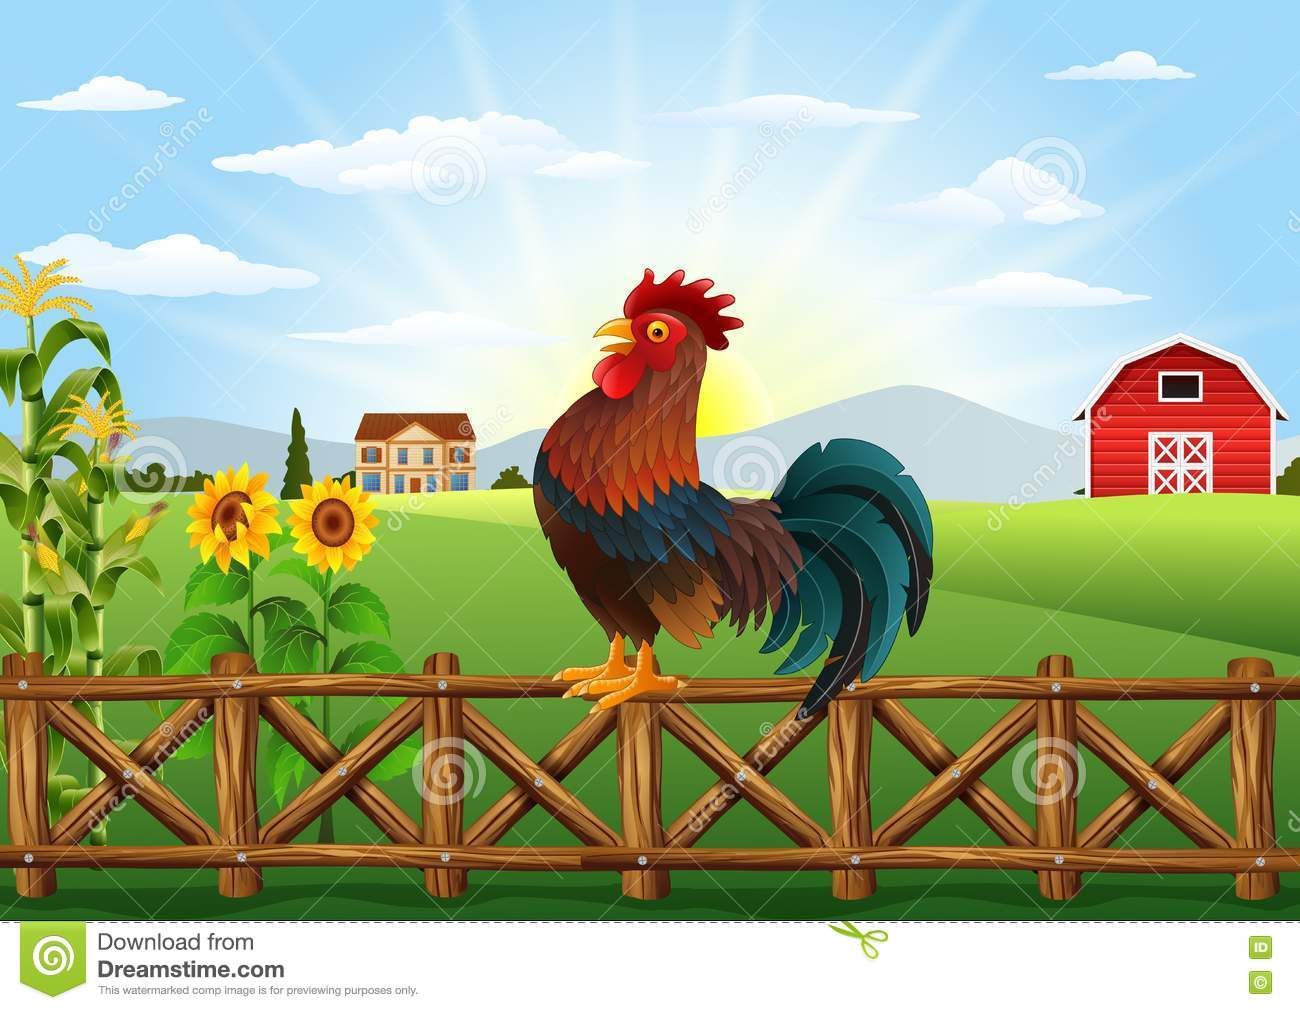 Cute Cartoon Rooster Crowing In The Farm Fence Stock ...